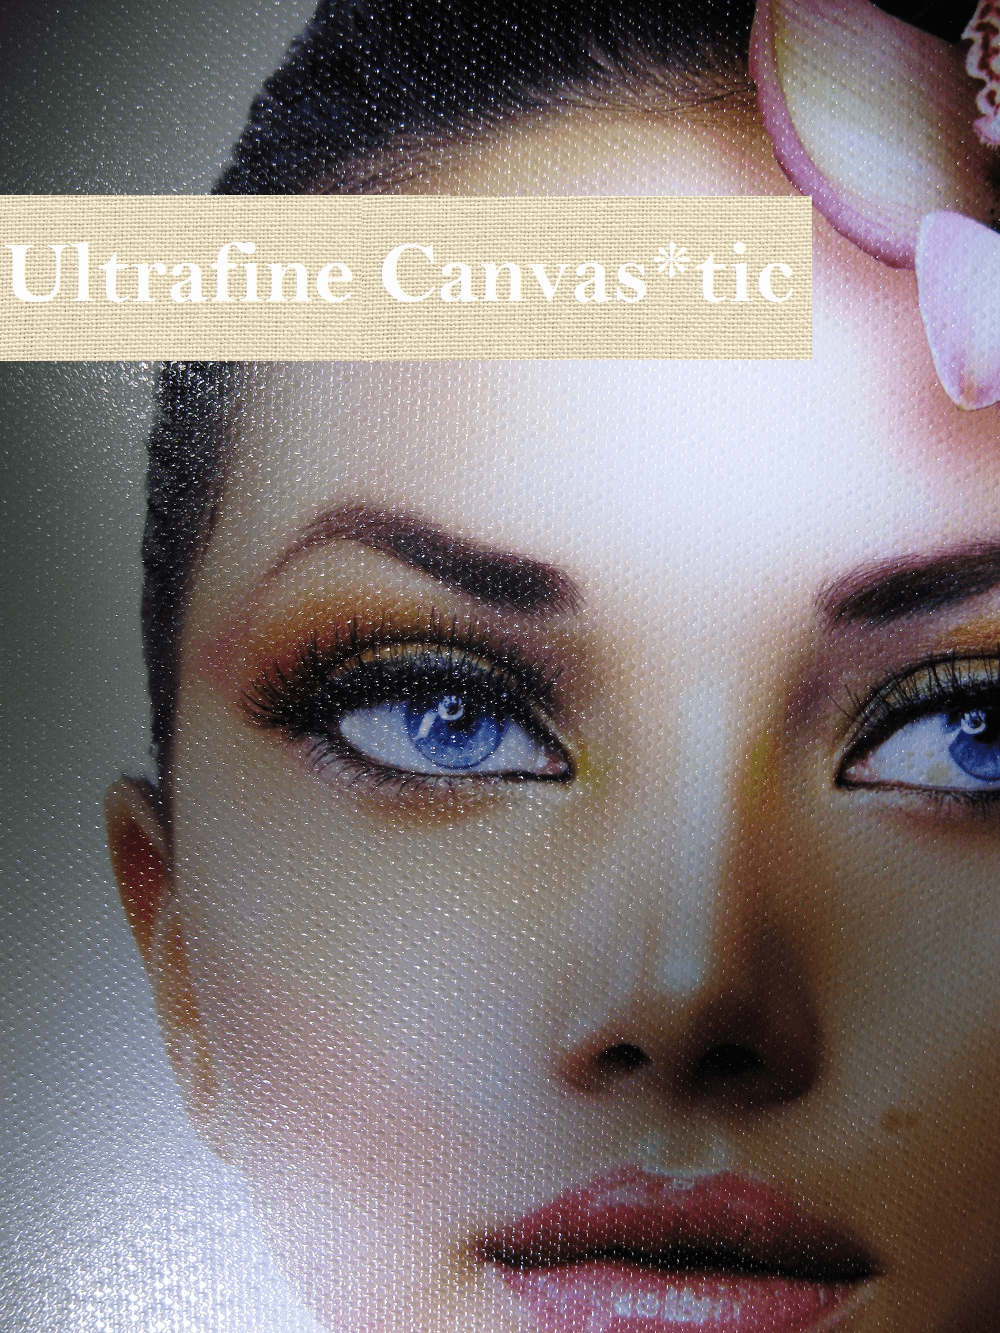 "Ultrafine Canvas*tic Canvas Textured Matte Fabric Photo Inkjet 19 Mil 17"" x 75' Roll"